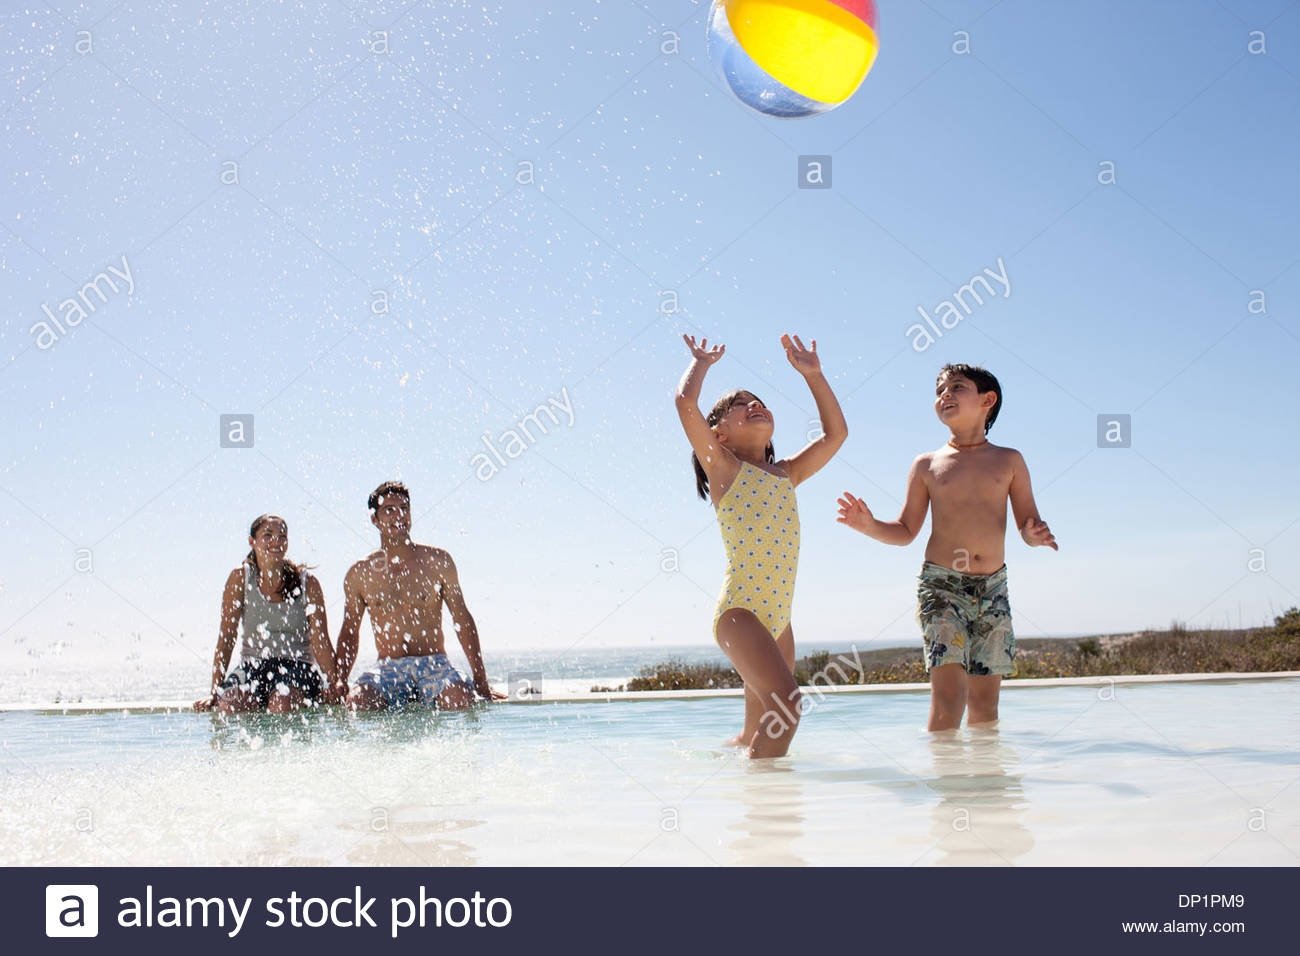 Family Playing with ball in swimming pool Photo Stock